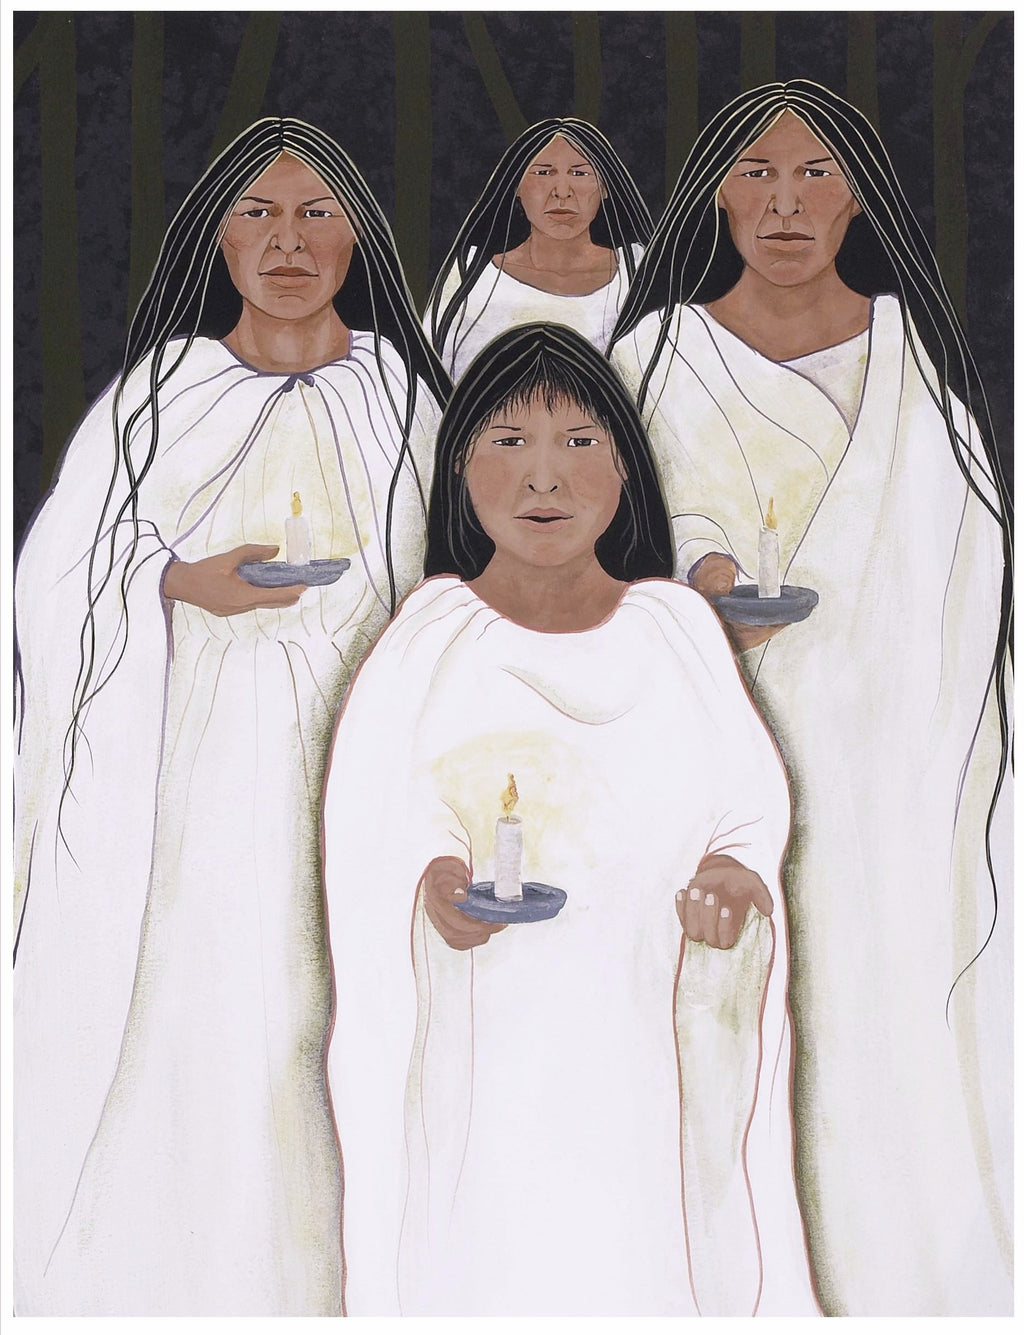 CHOCTAW WOMEN CARRYING CANDLES